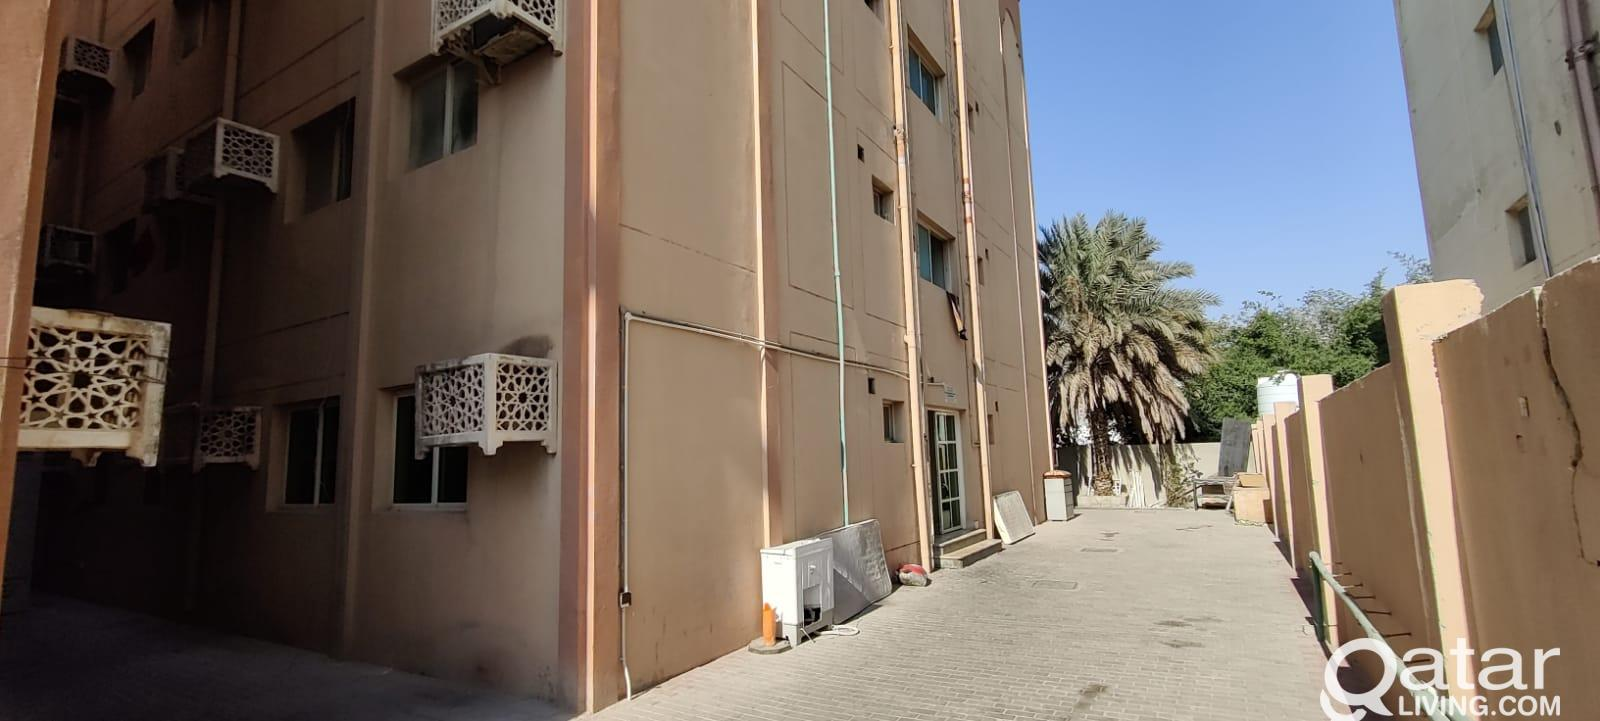 114 Room For Rent (Room size: 6x4)